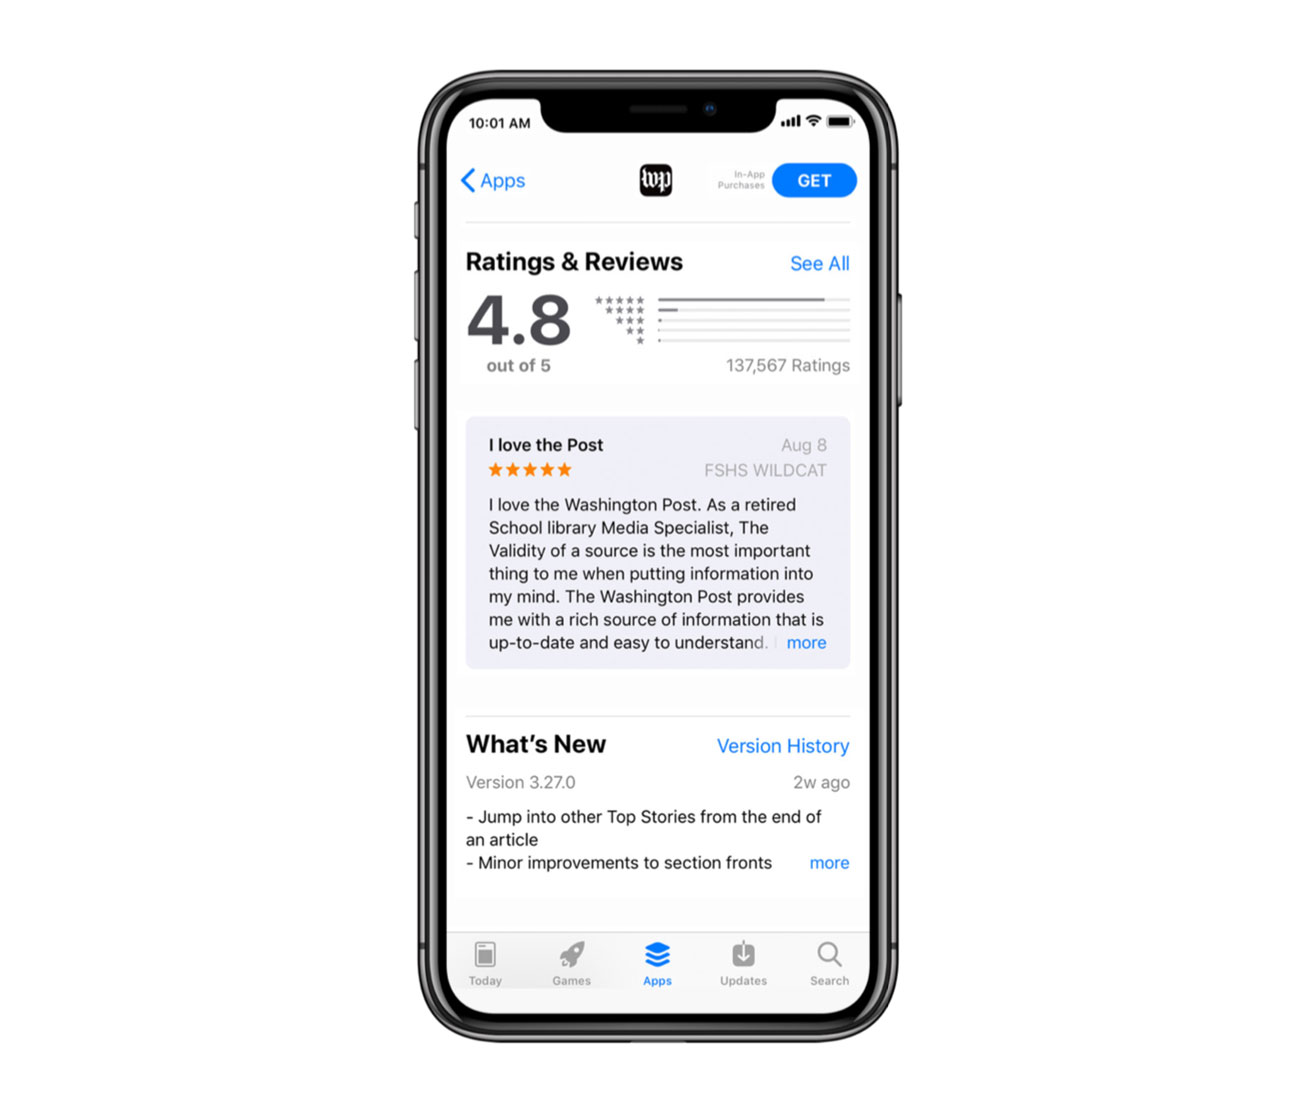 The Importance of App Store Ratings